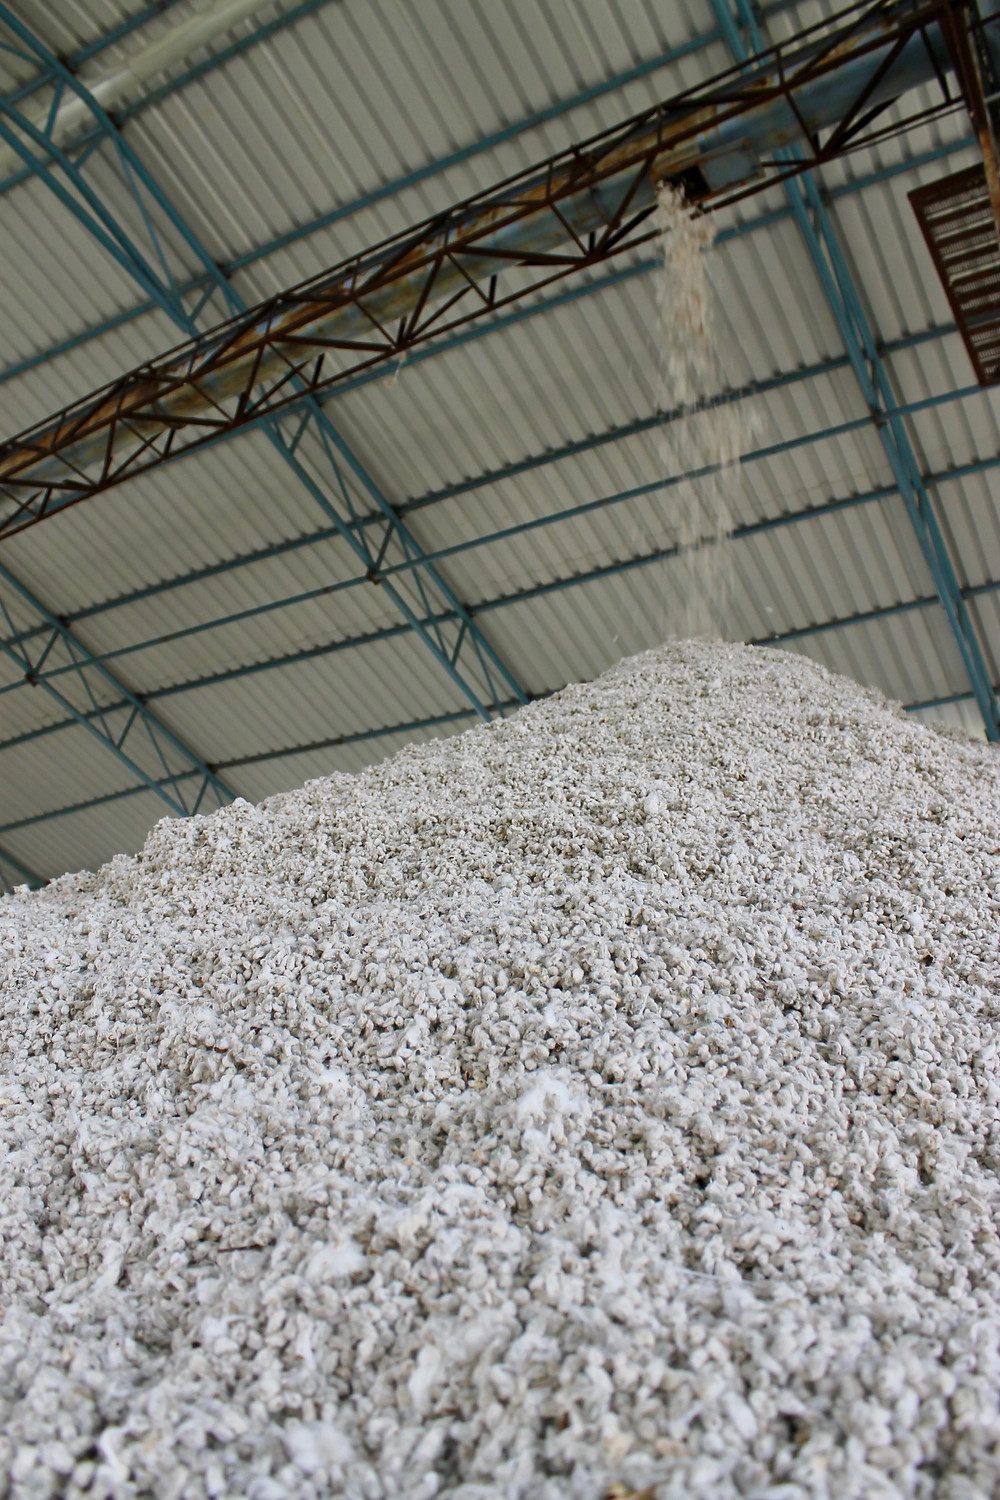 Billions of cotton seeds are pulled from cotton at a local ginning facility